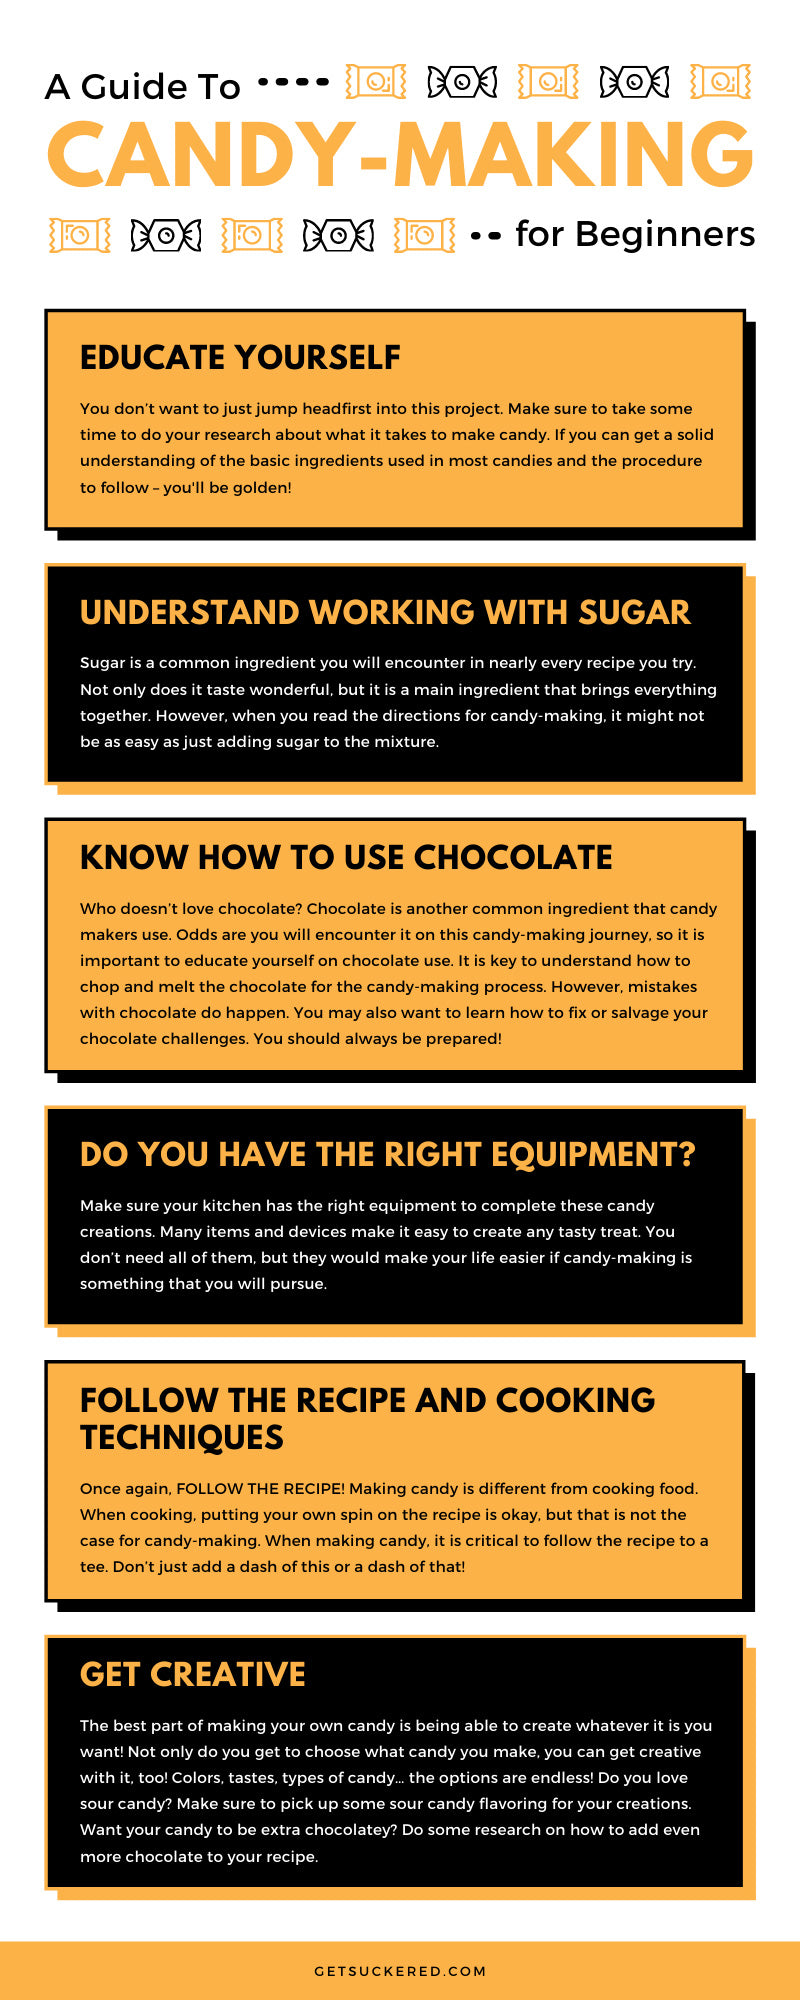 A Guide To Candy-Making for Beginners